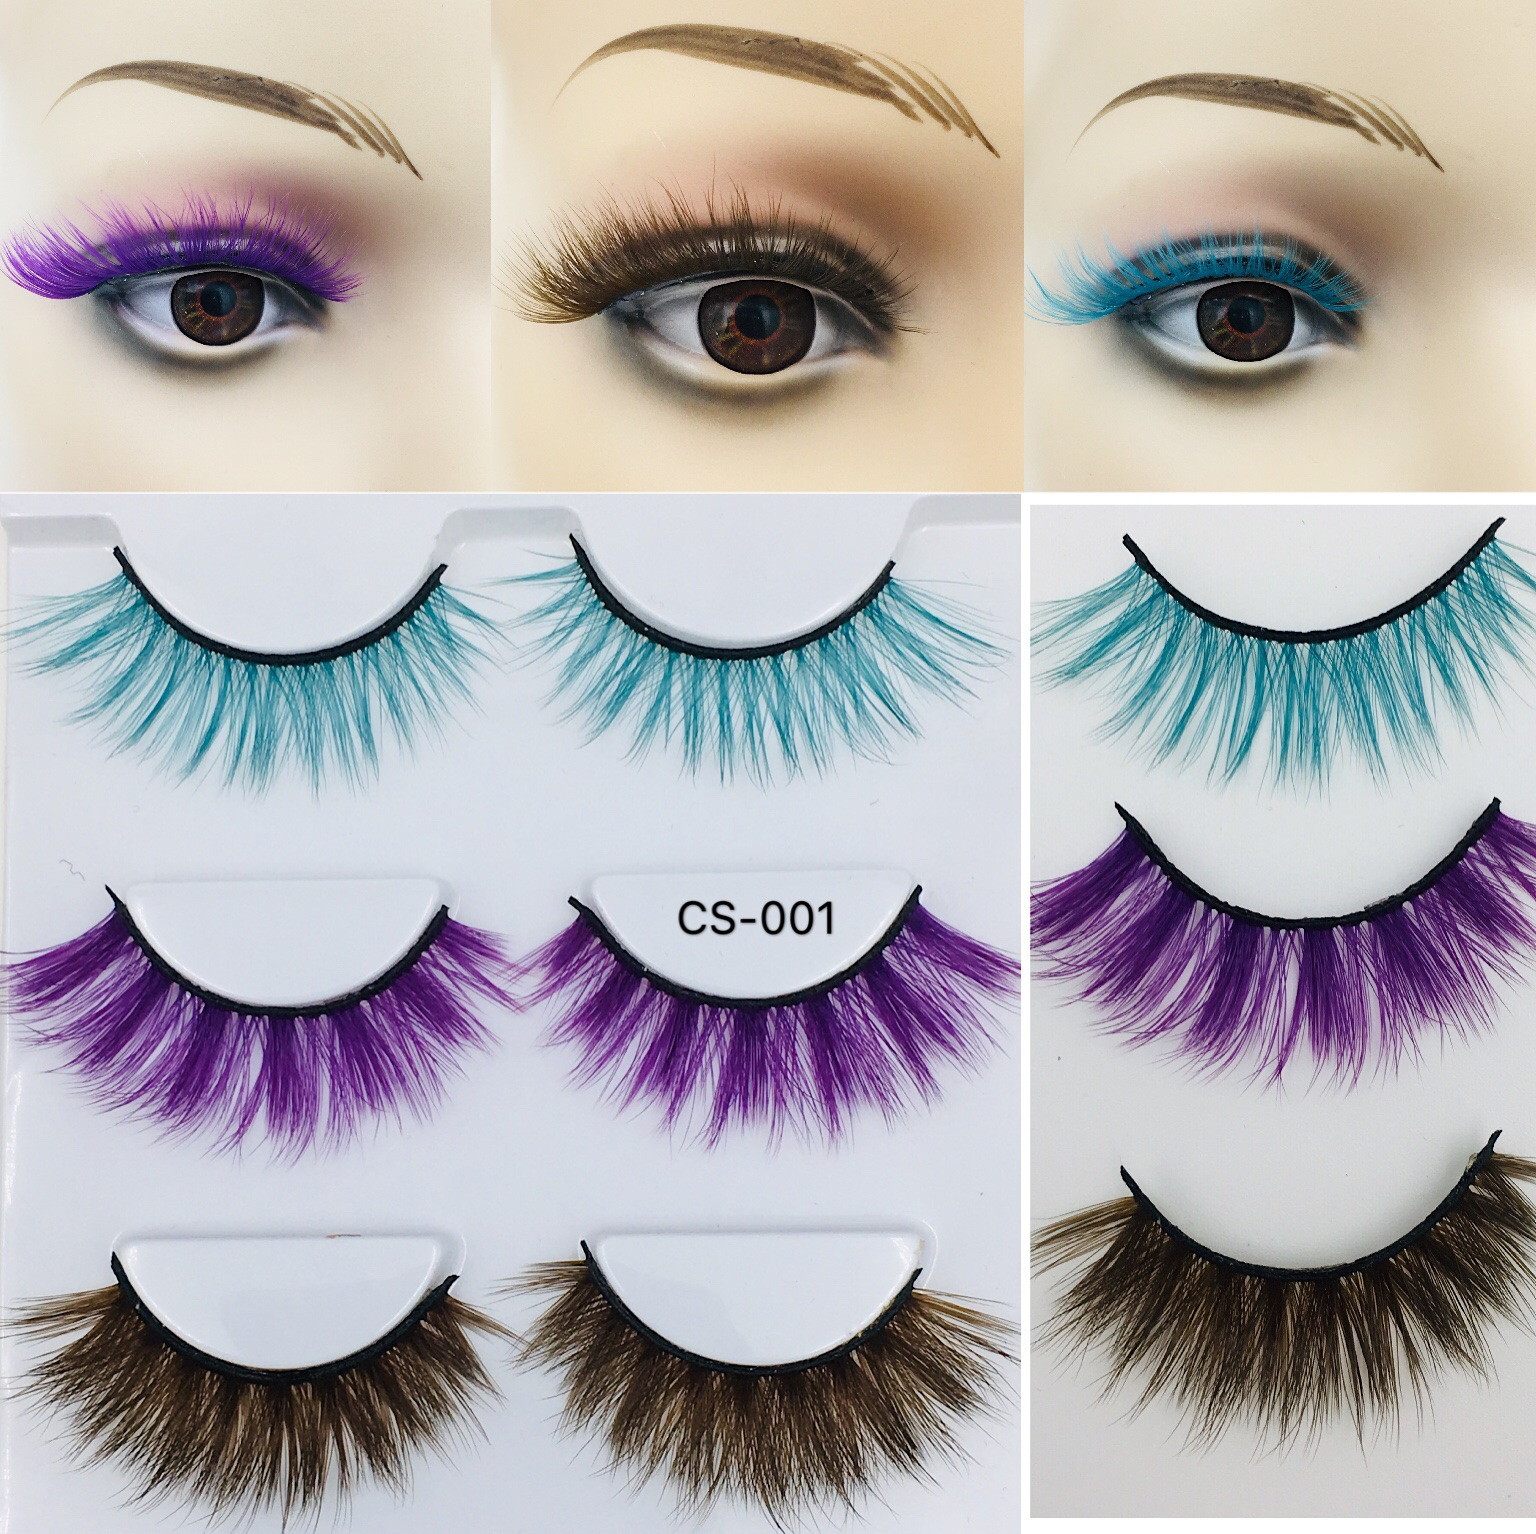 3Pairs Fashion Eye Lashes High Quality Mounted Colour False Eyelashes Individual Imitated Mink 3d